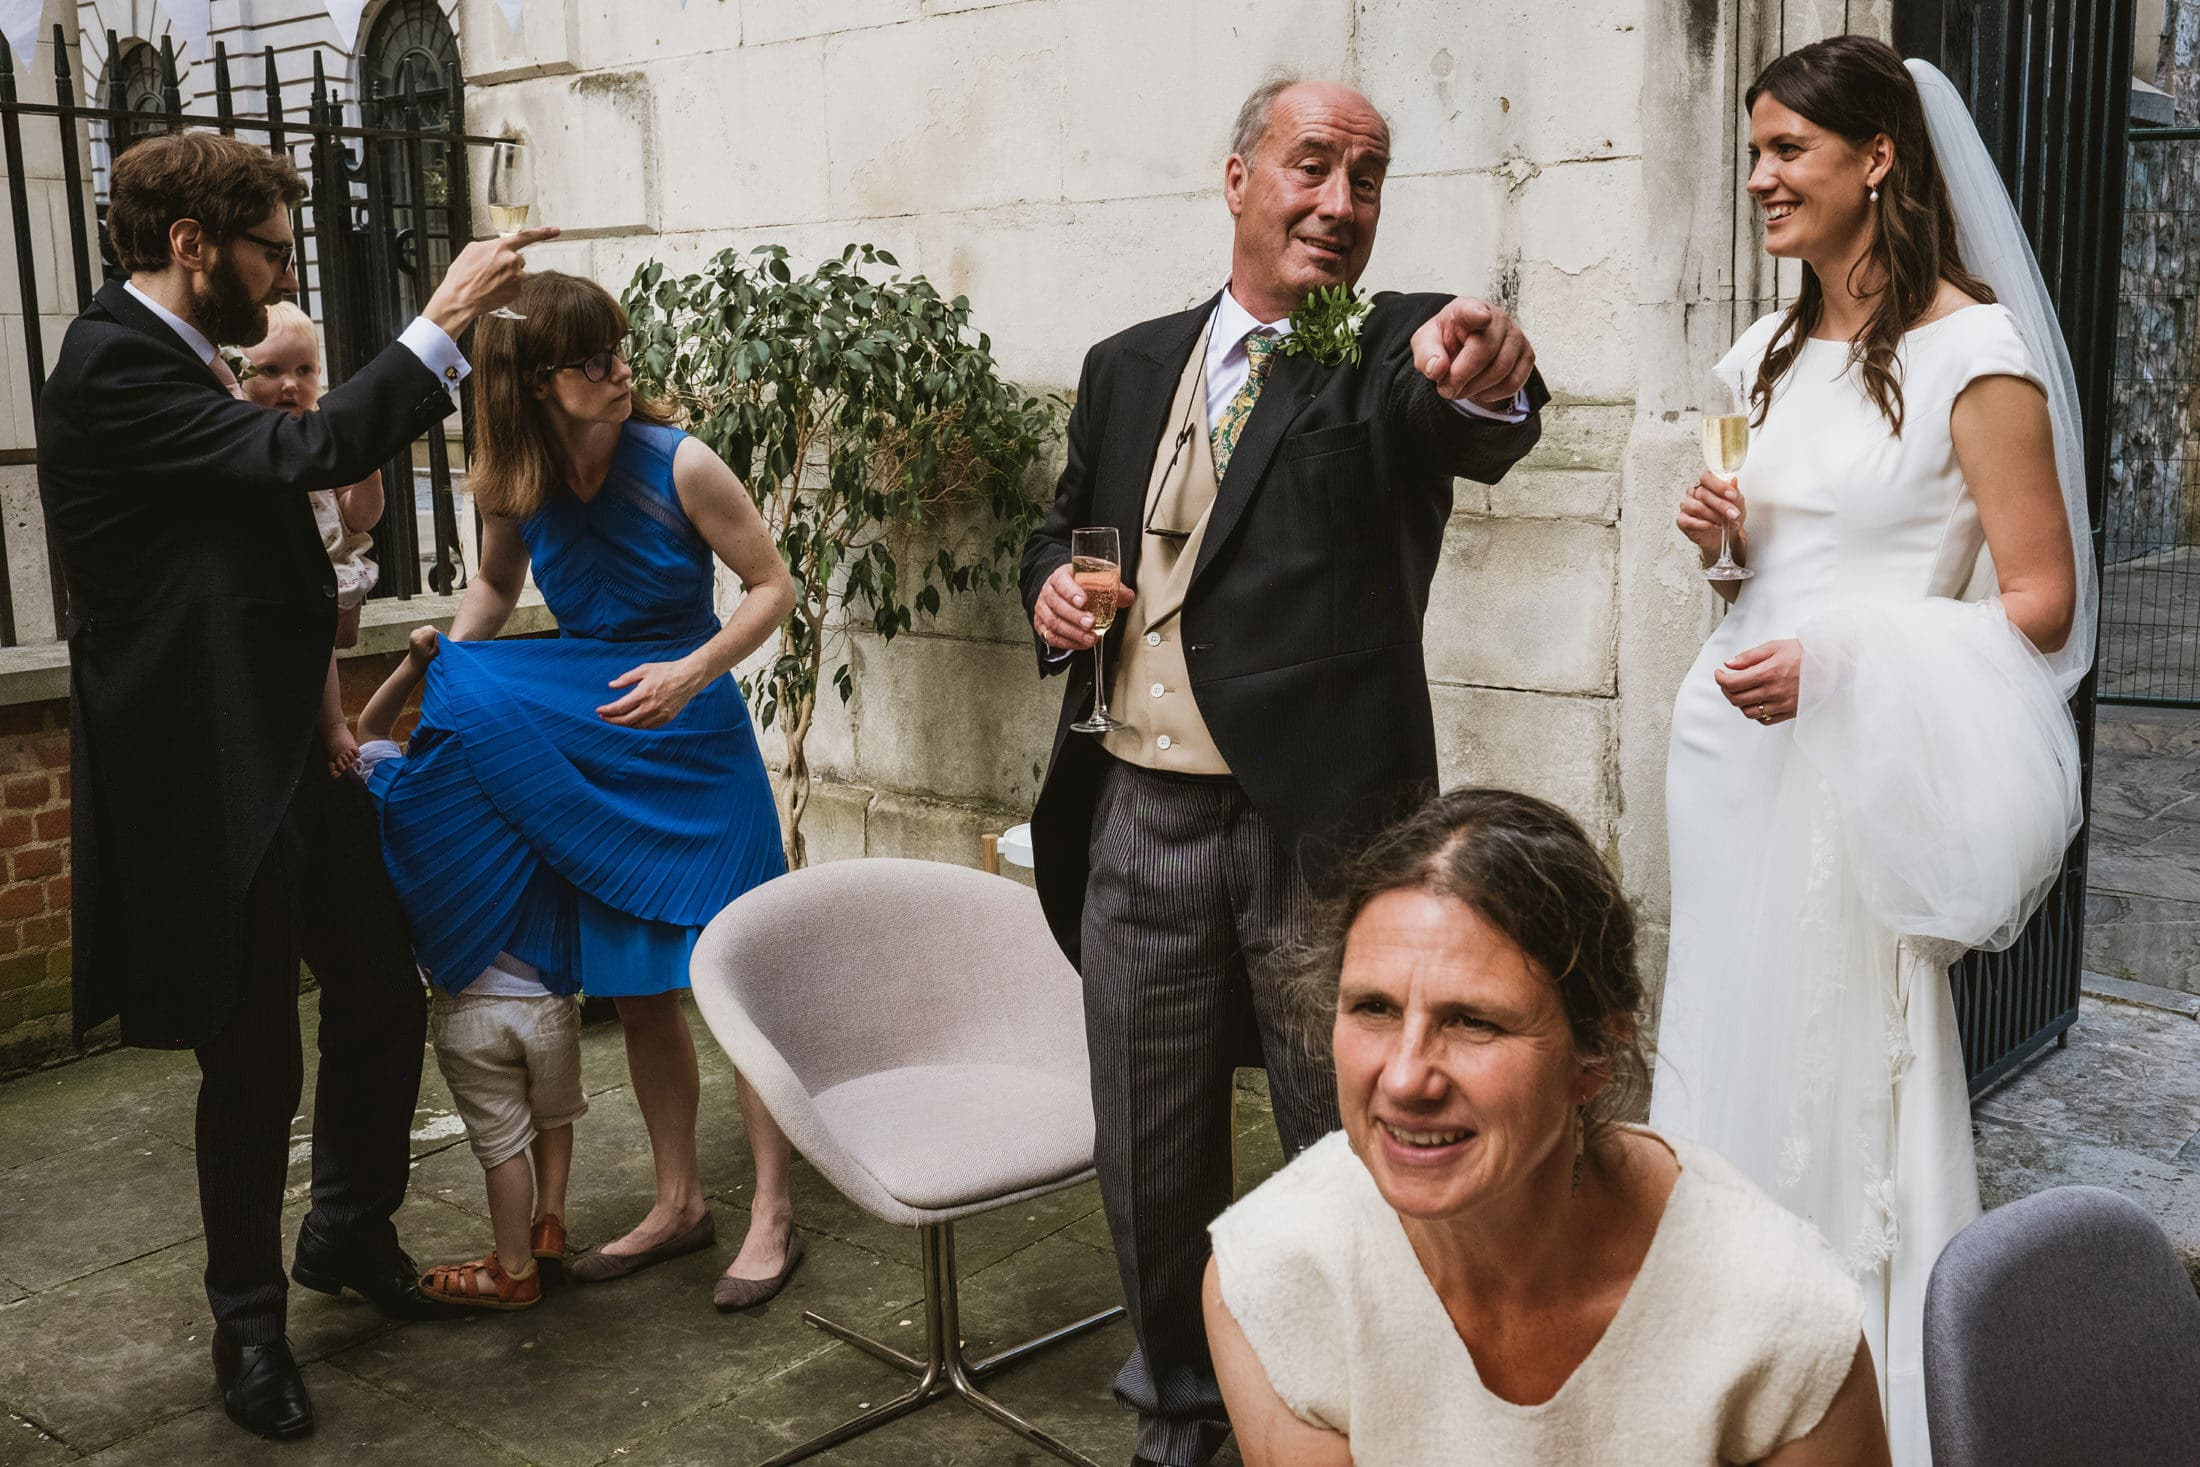 Father of the bride points over the photographer's shoulder in this street documentary style wedding photograph. Beside him stands the bride and in the foreground a woman sits, her head and shoulders visibile. On the left a child hides his head and shoulders in his mother's blue skirt whilst a groomsman beside her appears to raise a toast to someone with a champagne glass, another child in his other arm.